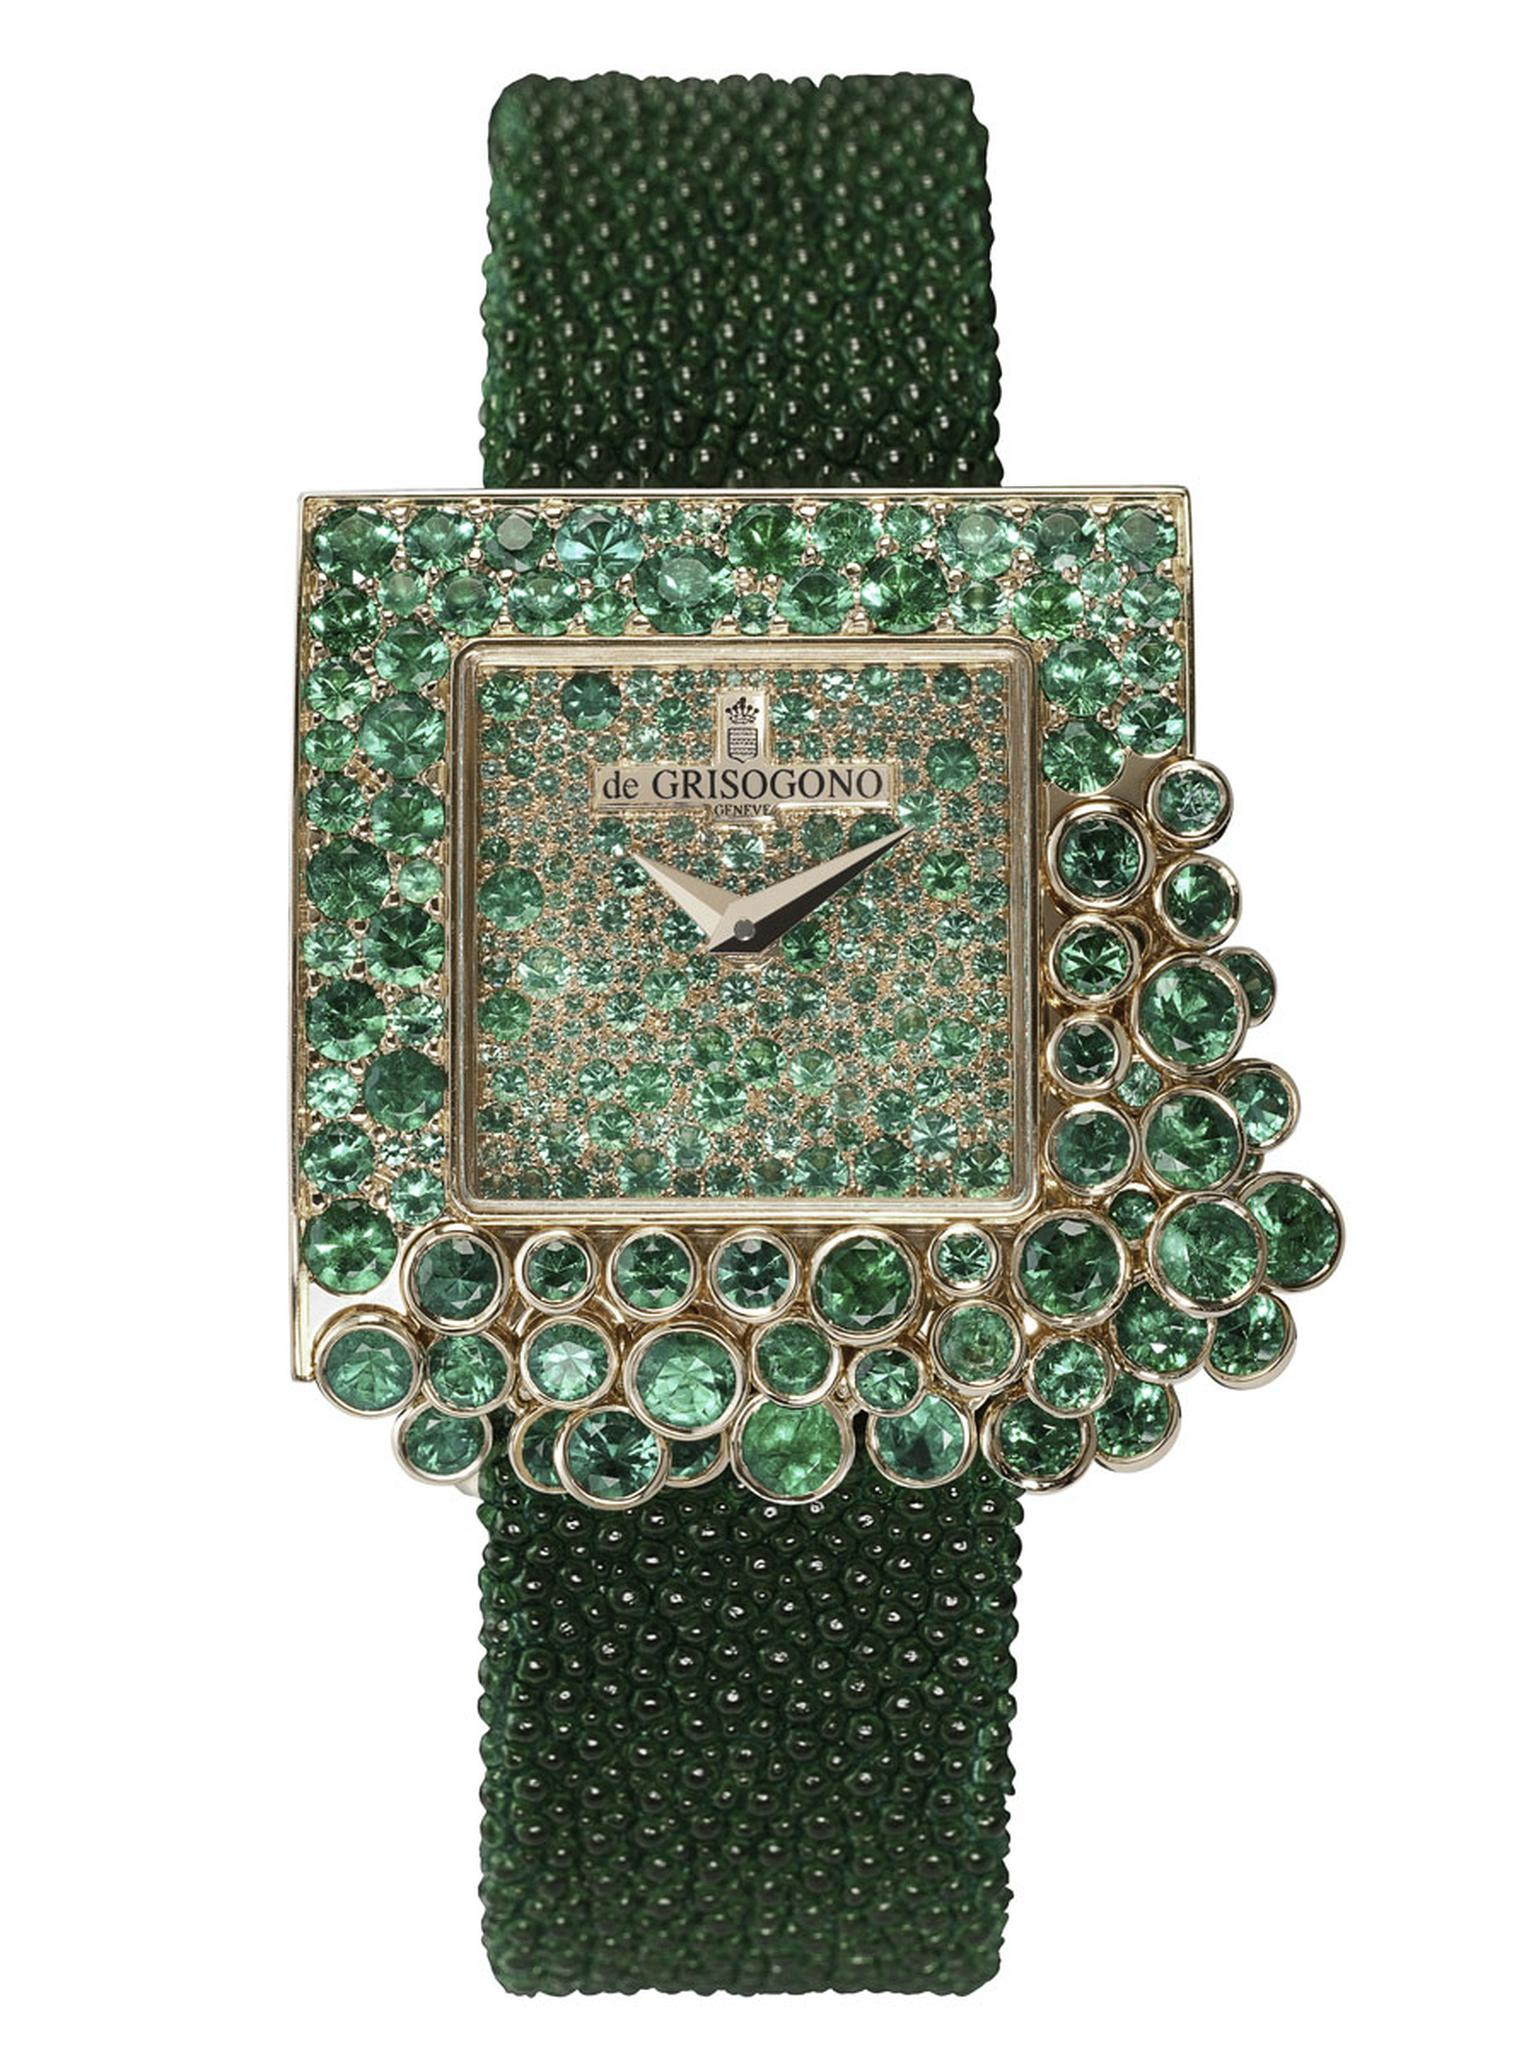 De GRISOGONO 'Sugar' watch in full-pavéd pink gold, with gem-set sides and back case set with 476 emeralds at 8ct.